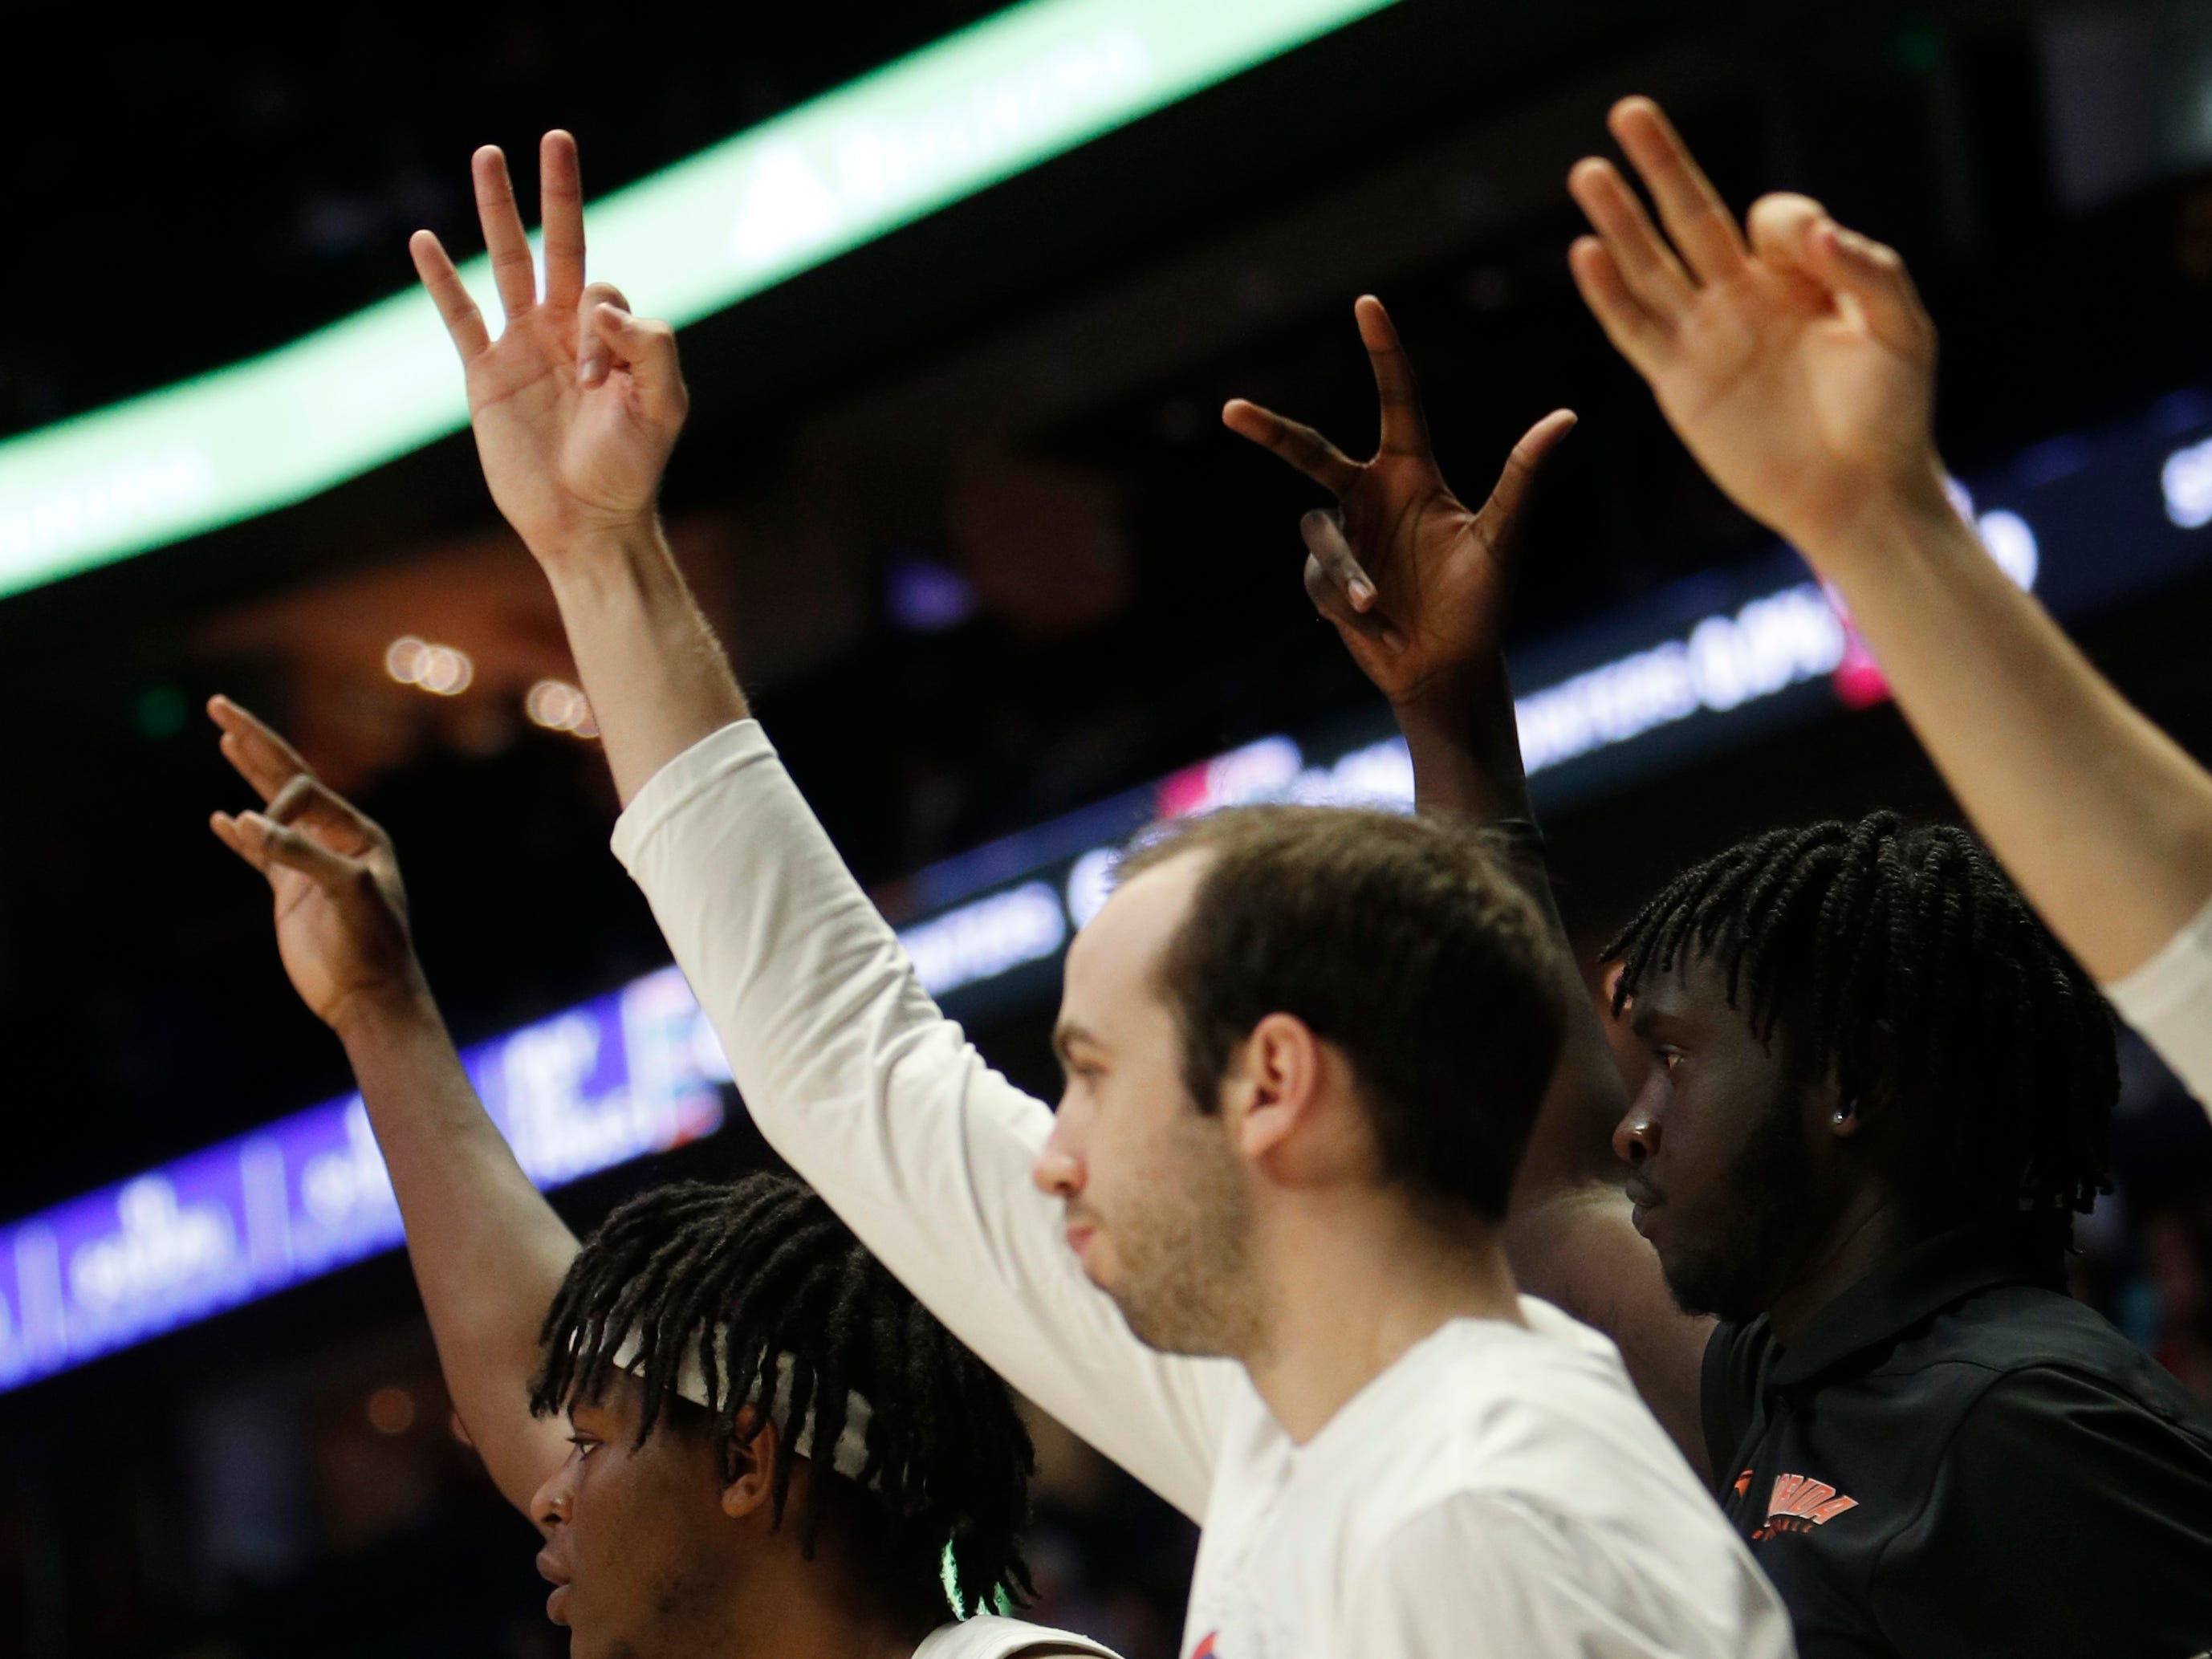 Florida players signal a three-pointer during the first half of the SEC Men's Basketball Tournament game at Bridgestone Arena in Nashville, Tenn., Thursday, March 14, 2019.